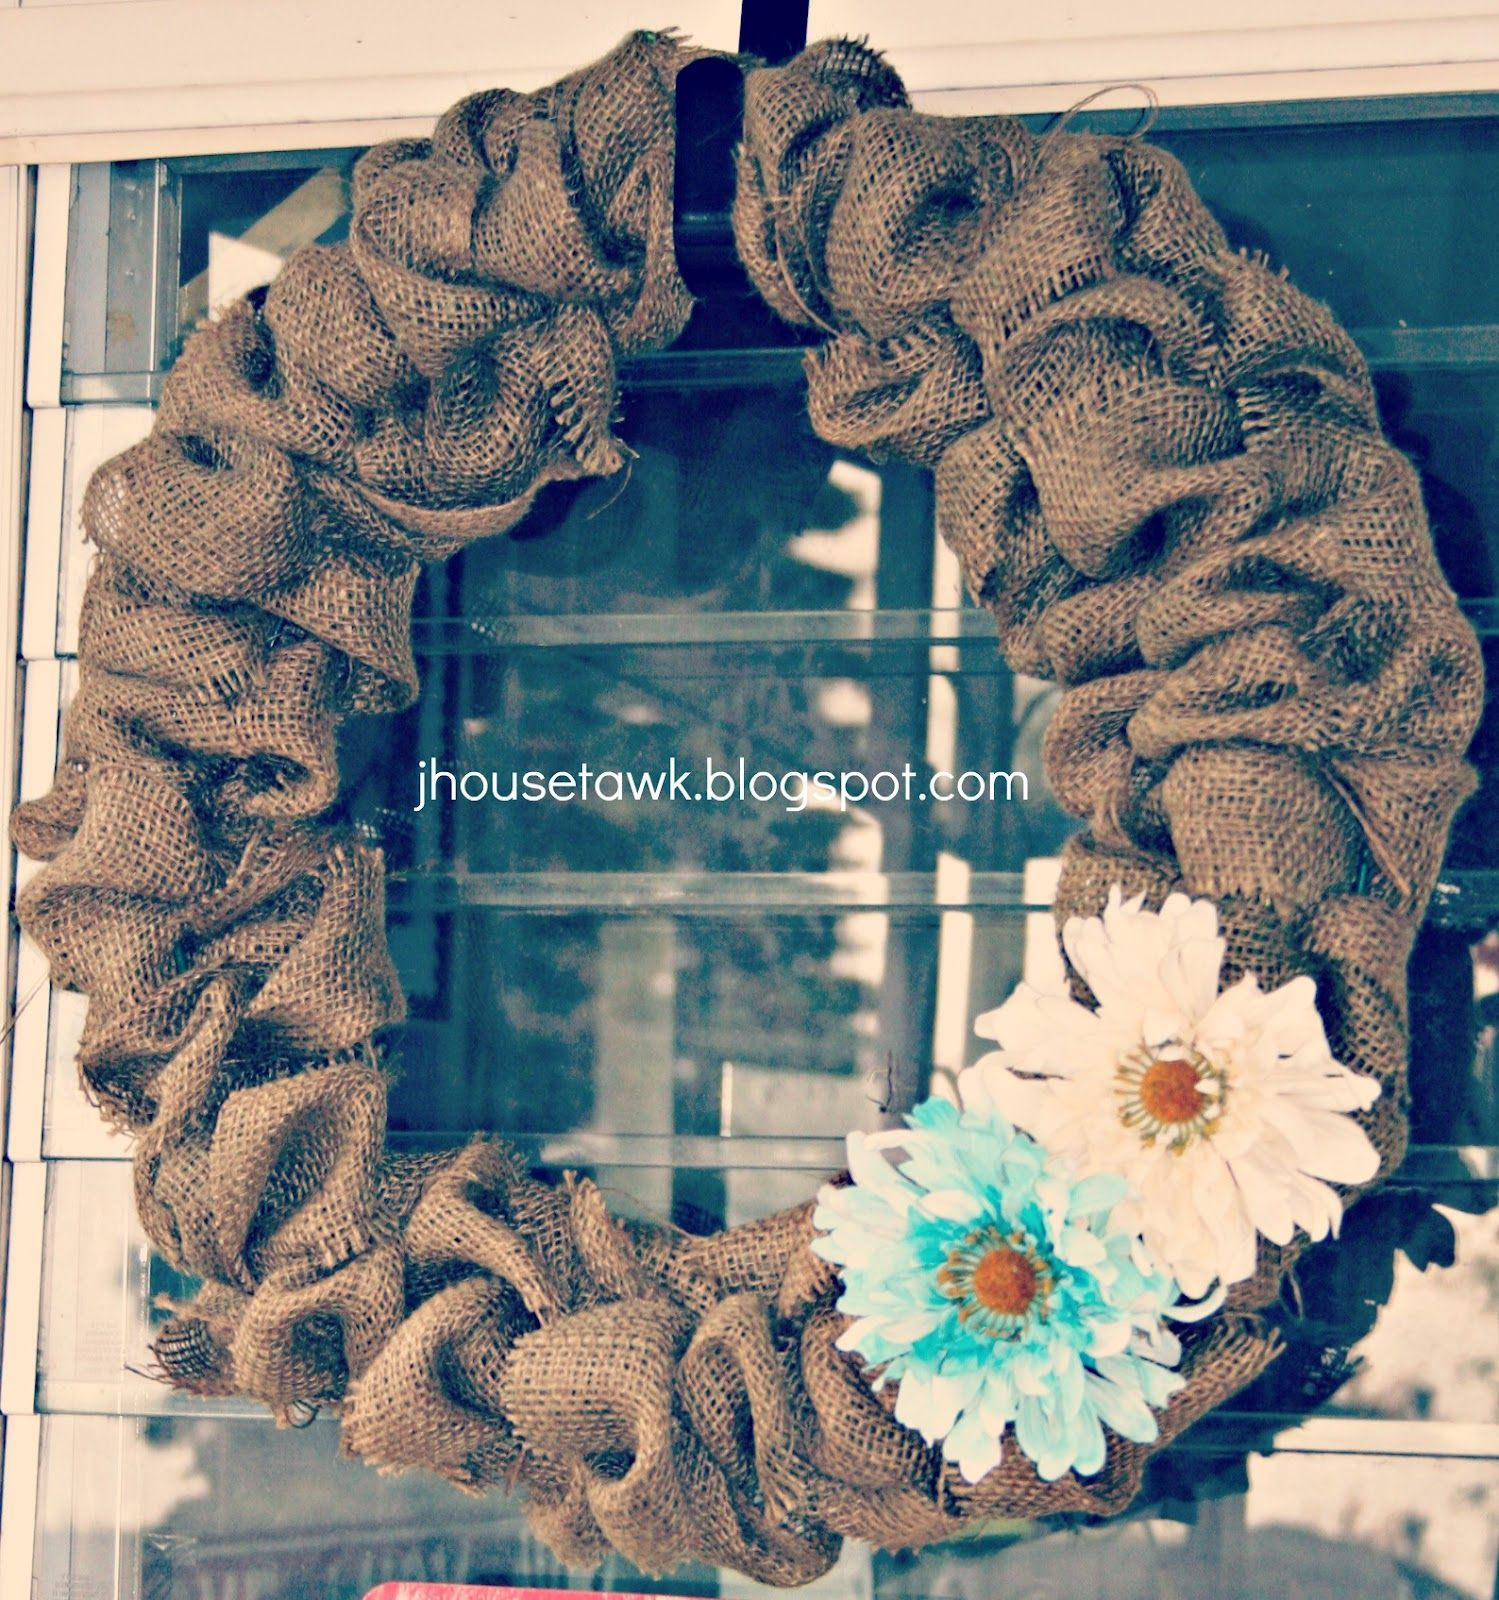 J House Tawk: Spring/Summer Burlap Wreaths!!